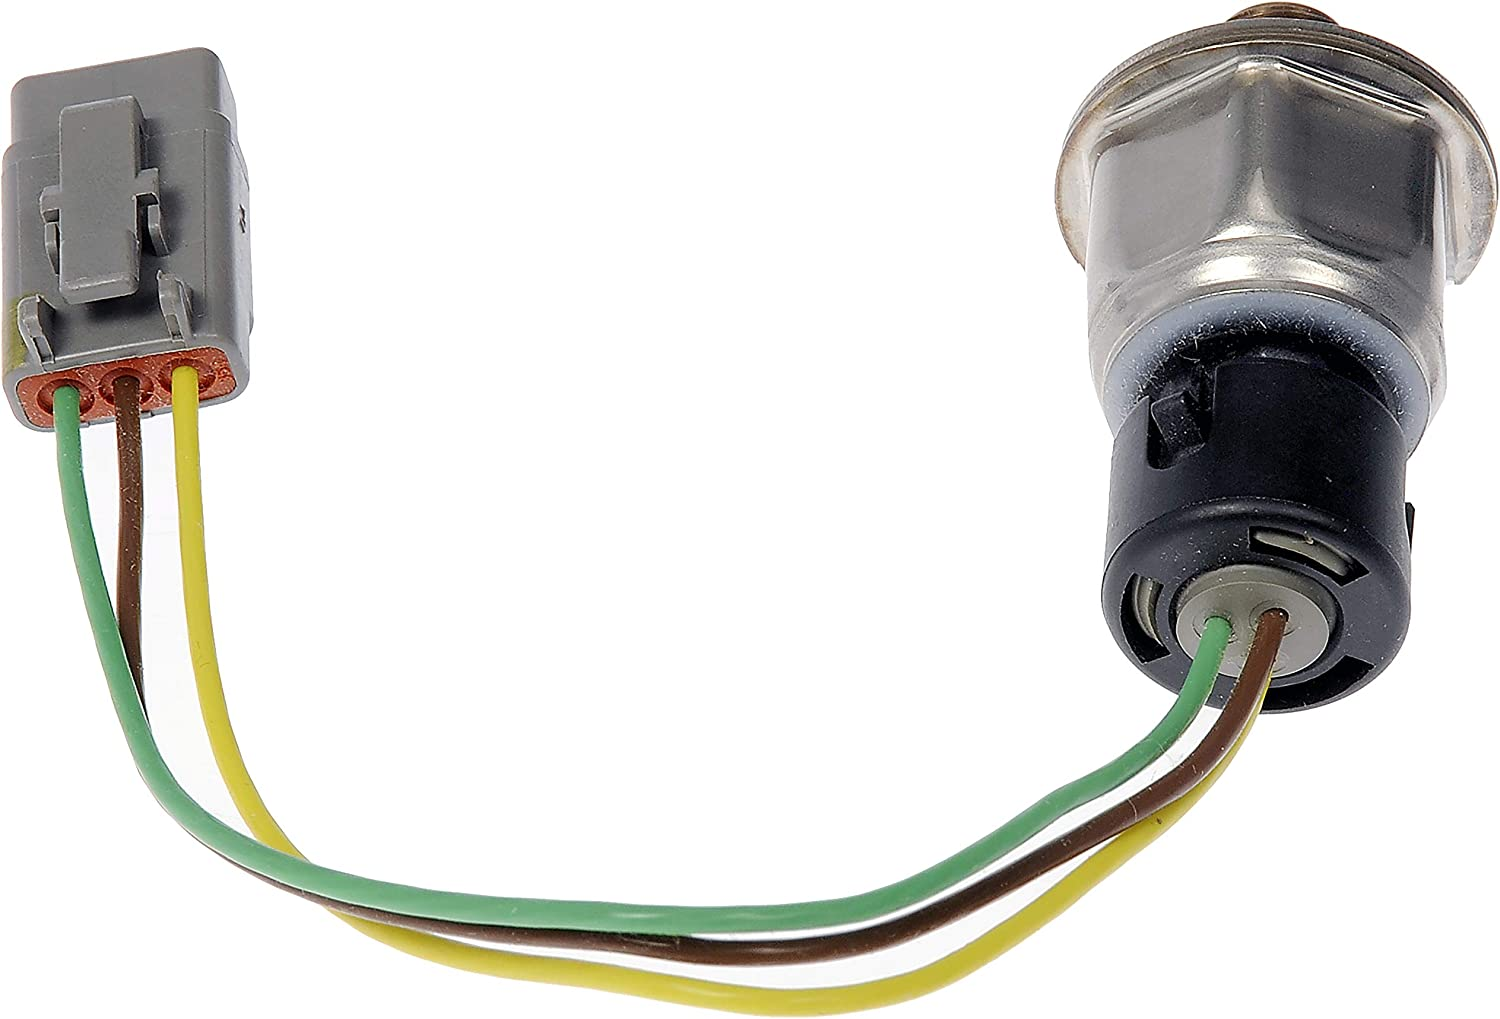 Dorman 904-7519 Diesel Injection Control Pressure Sensor for Select IC Corporation//International Models